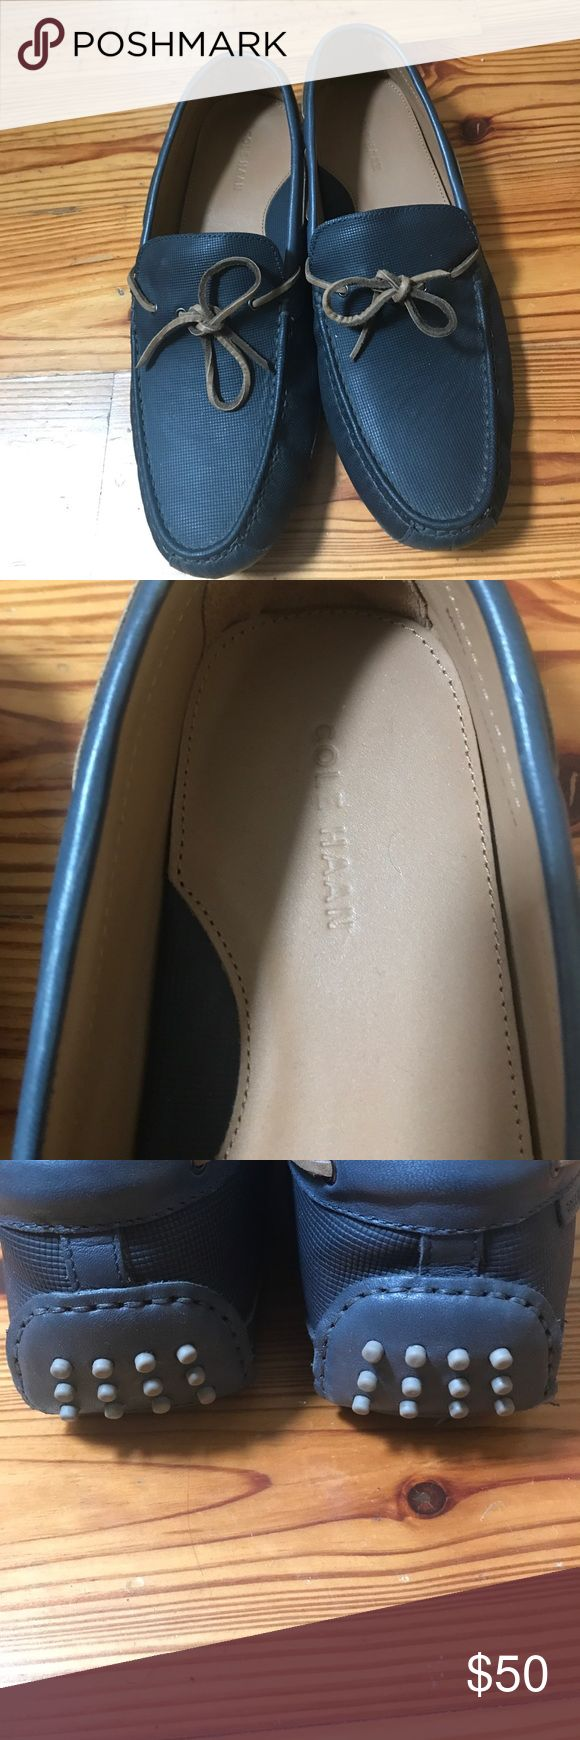 Cole Haan Drivers Never worn, size didn't fit Cole Haan Shoes Loafers & Slip-Ons